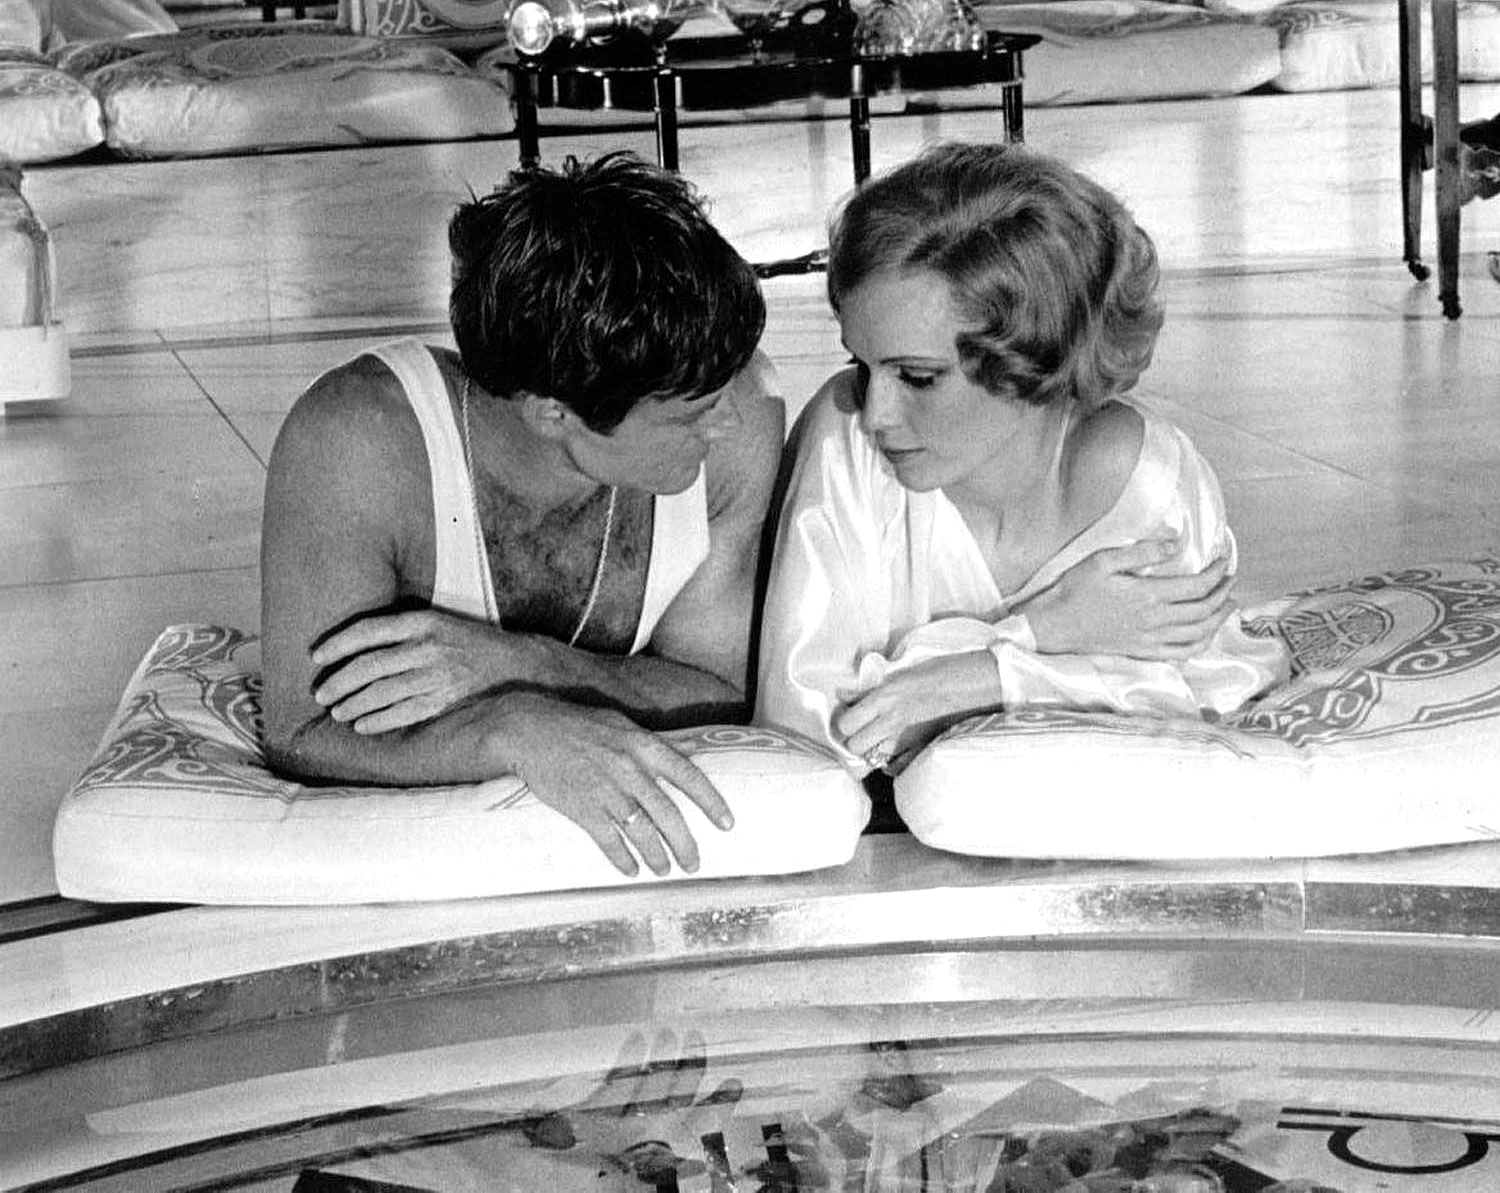 http://3.bp.blogspot.com/_04kZGR_ltmE/S8sys16uSSI/AAAAAAAAHHY/9ai48sUQS2M/s1600/The-Great-Gatsby-Robert-Redford-and-Mia-Farrow.jpg